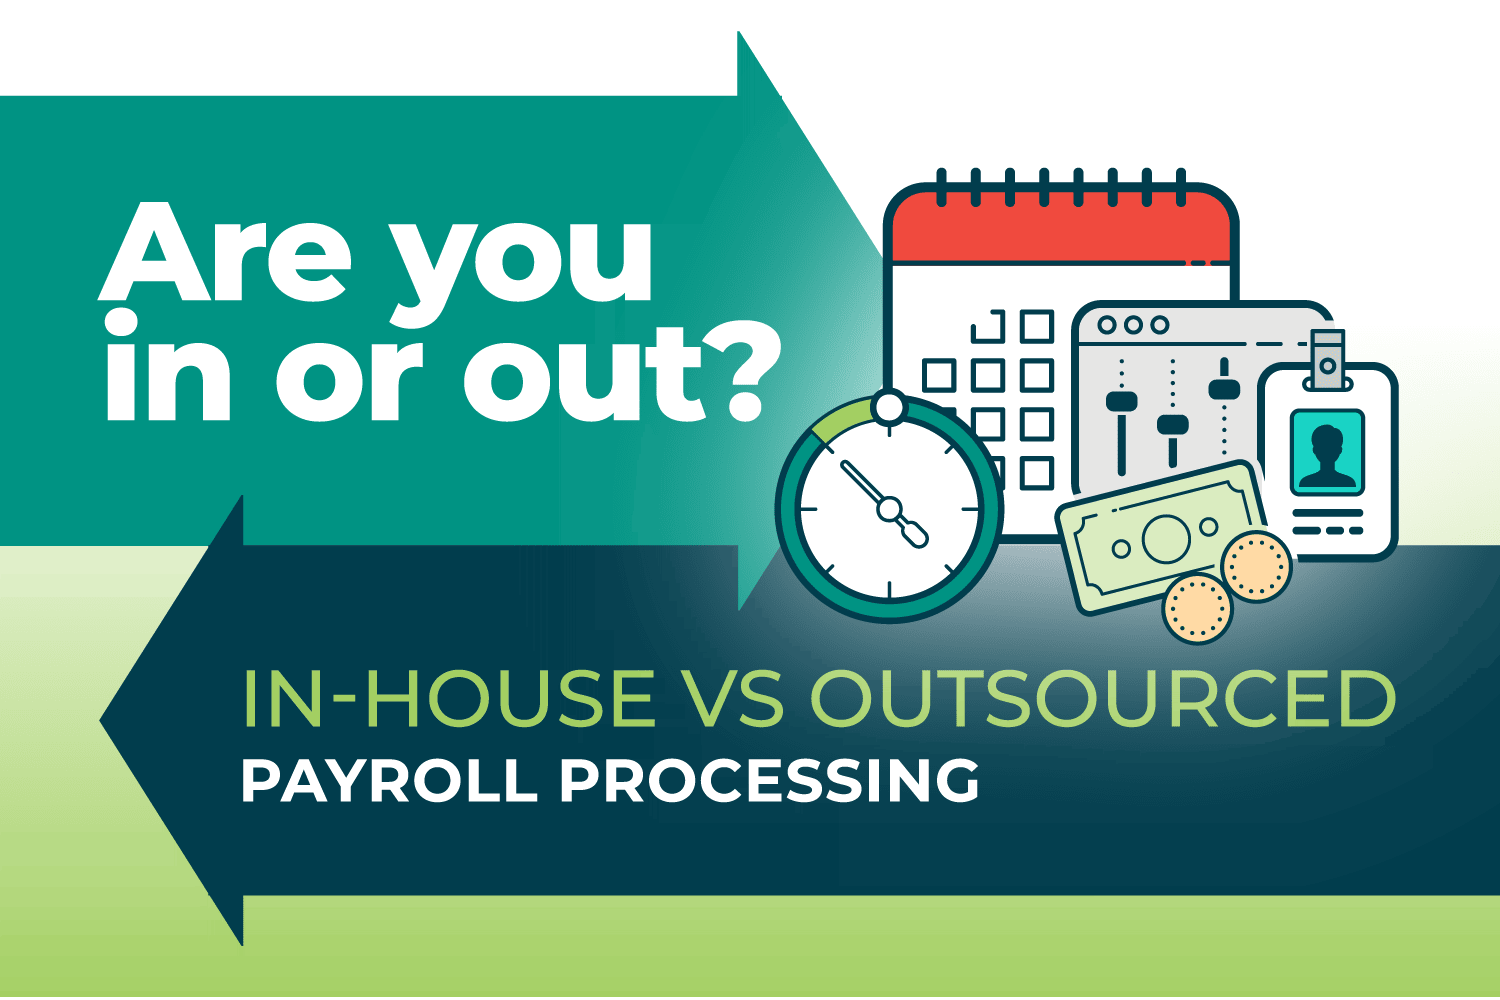 Are you in or out? Outsourcing Payroll vs. In-House Processing